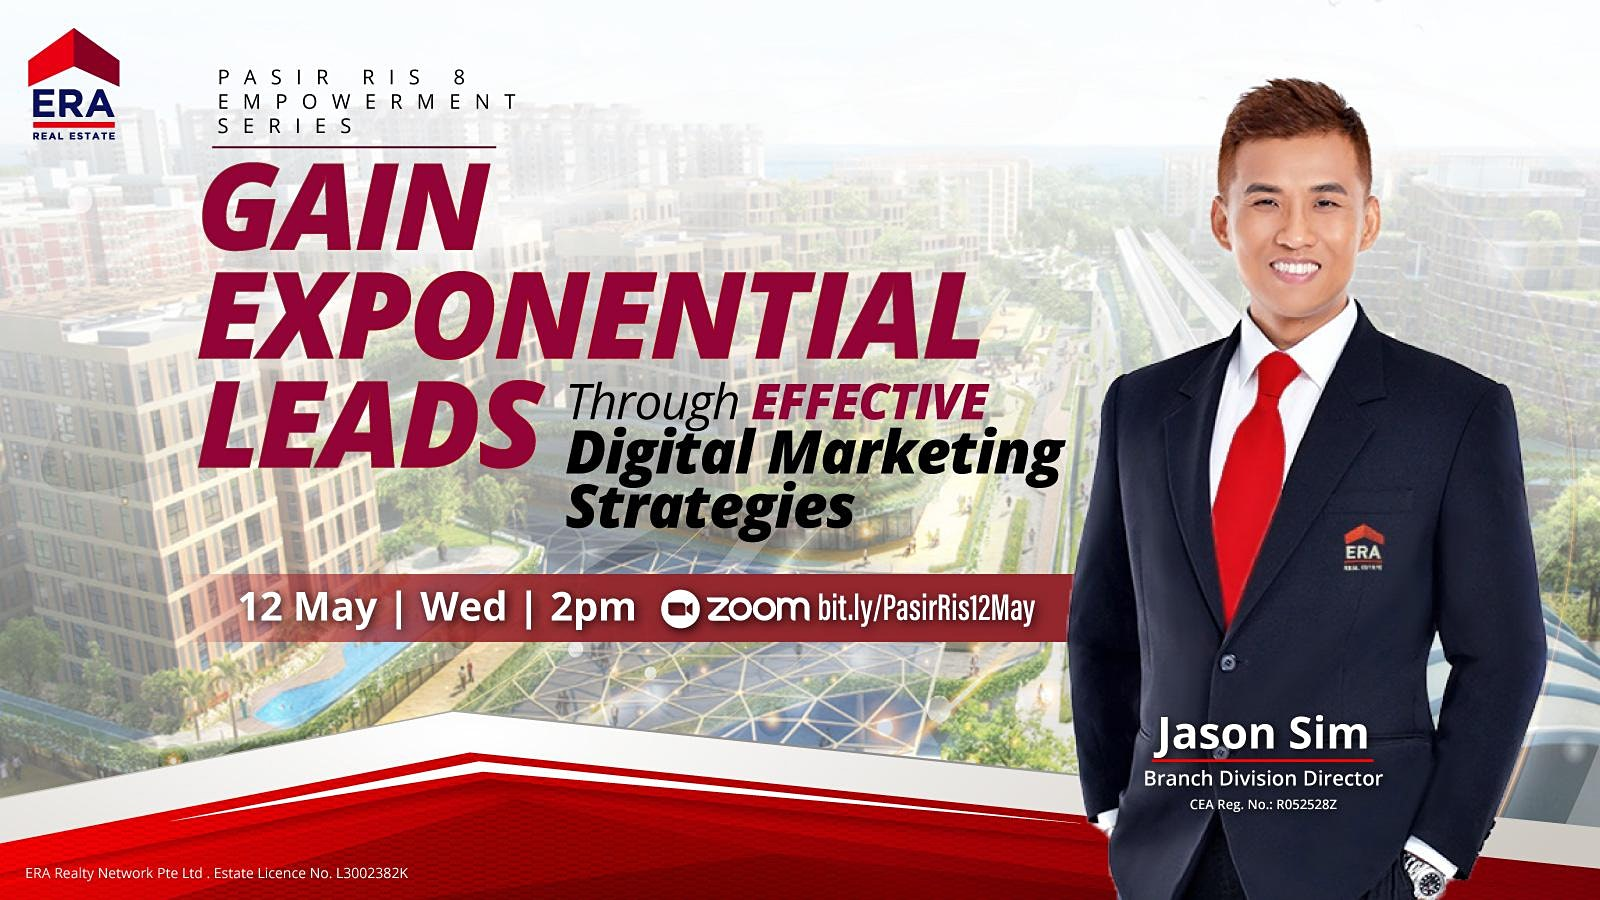 Gain Exponential Leads Through Effective Digital Marketing Strategies